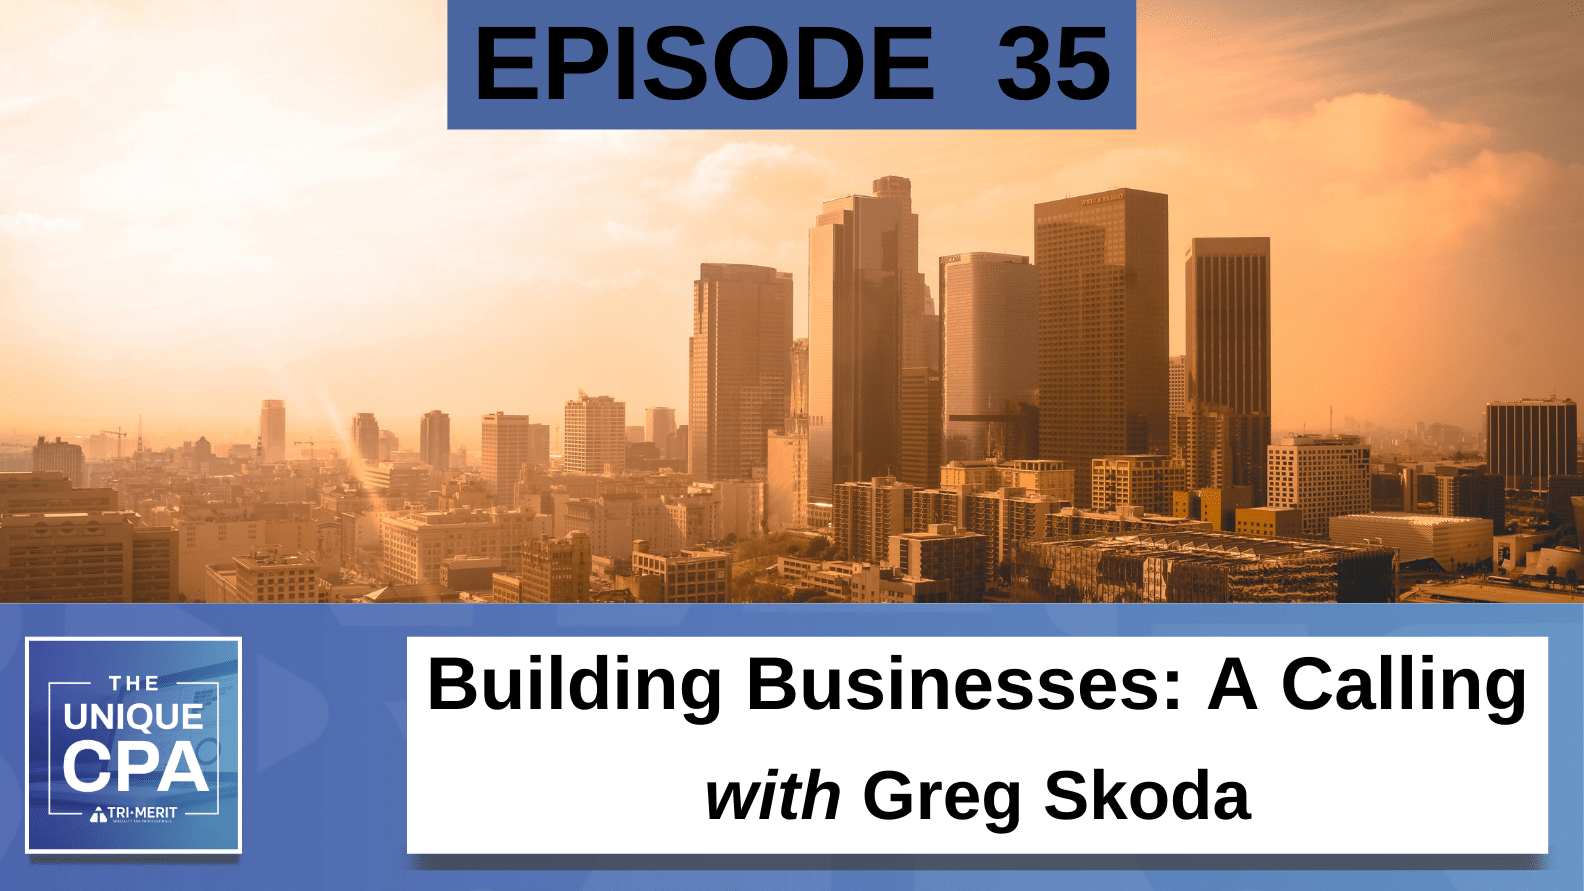 Unique CPA Featured Image Ep 35 Greg Skoda - Building Businesses: A Calling - Tri-Merit